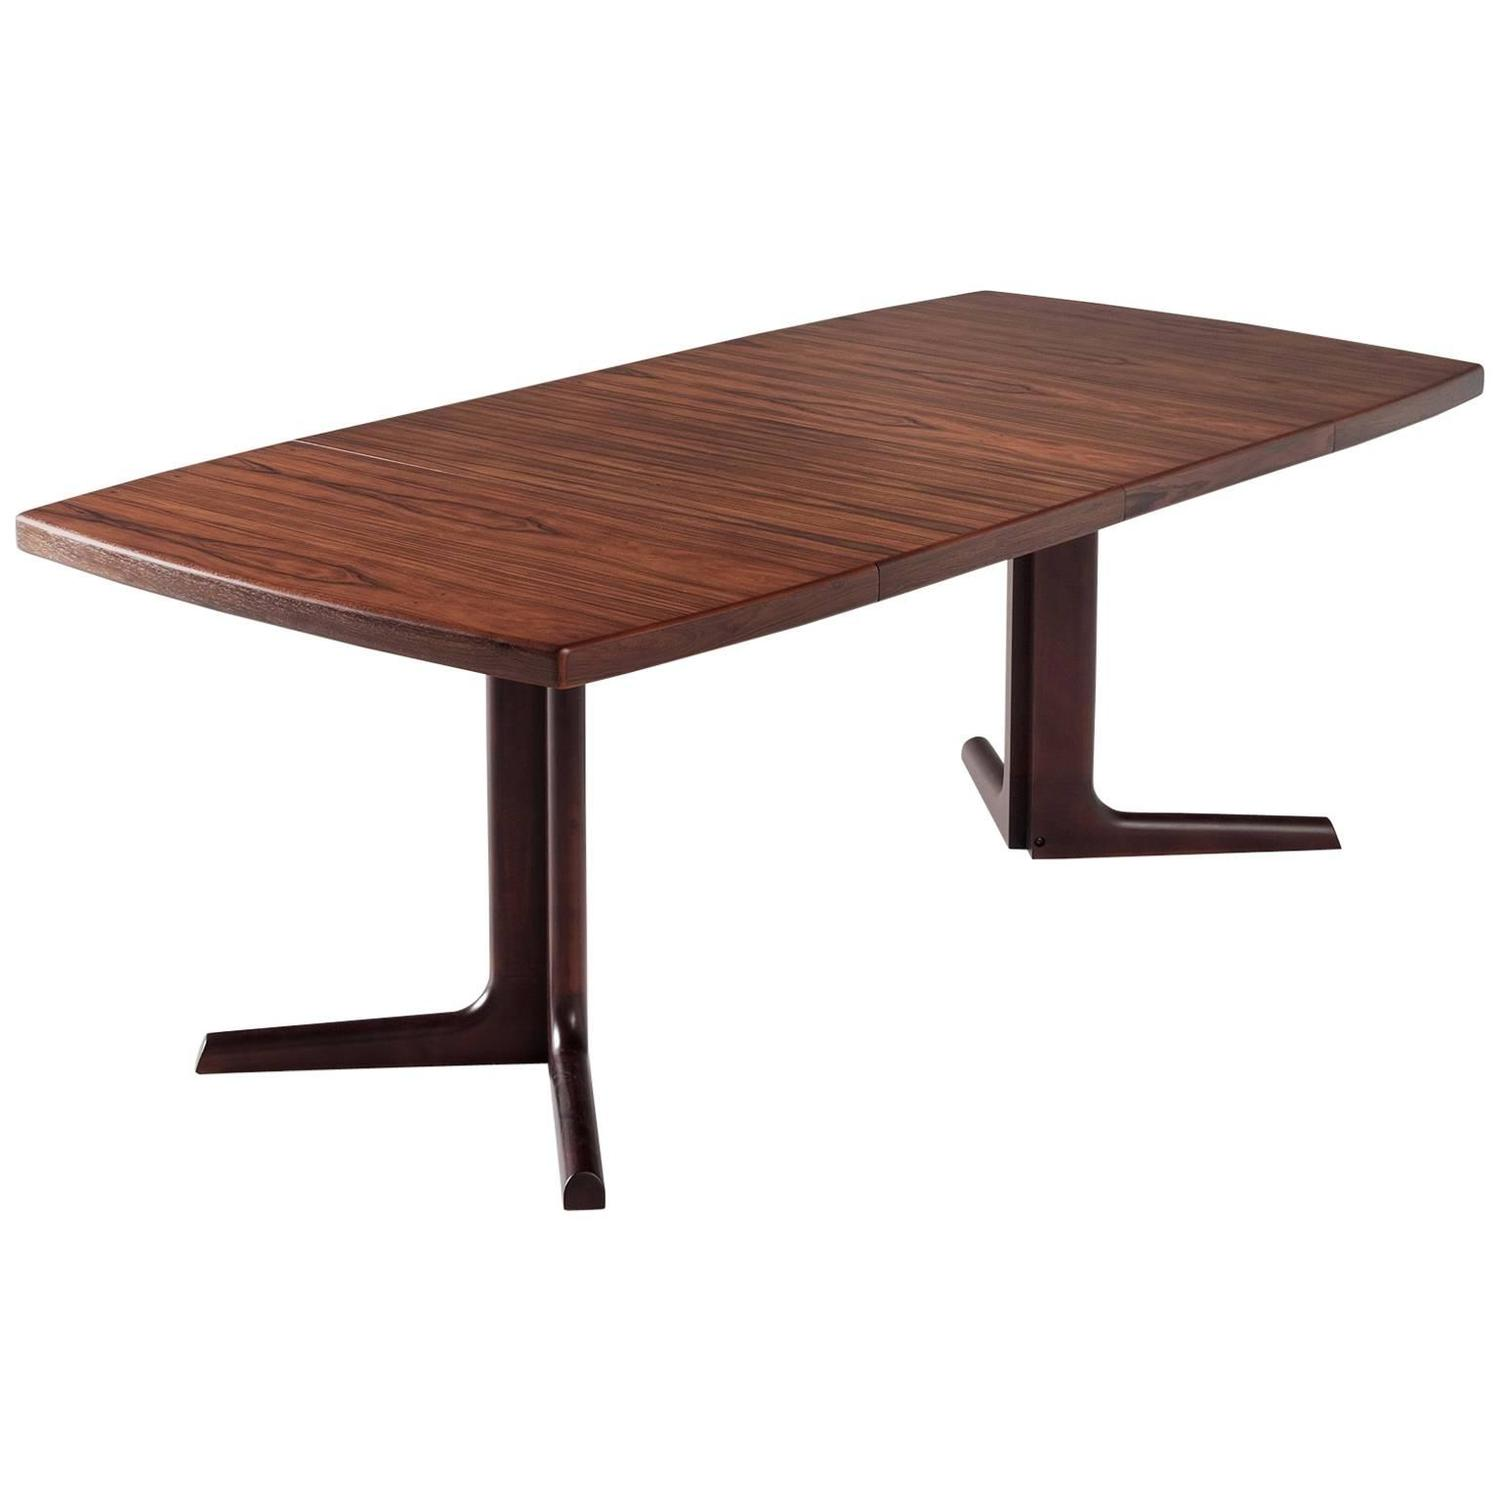 Extendable Danish Dining Table In Rosewood At 1stdibs